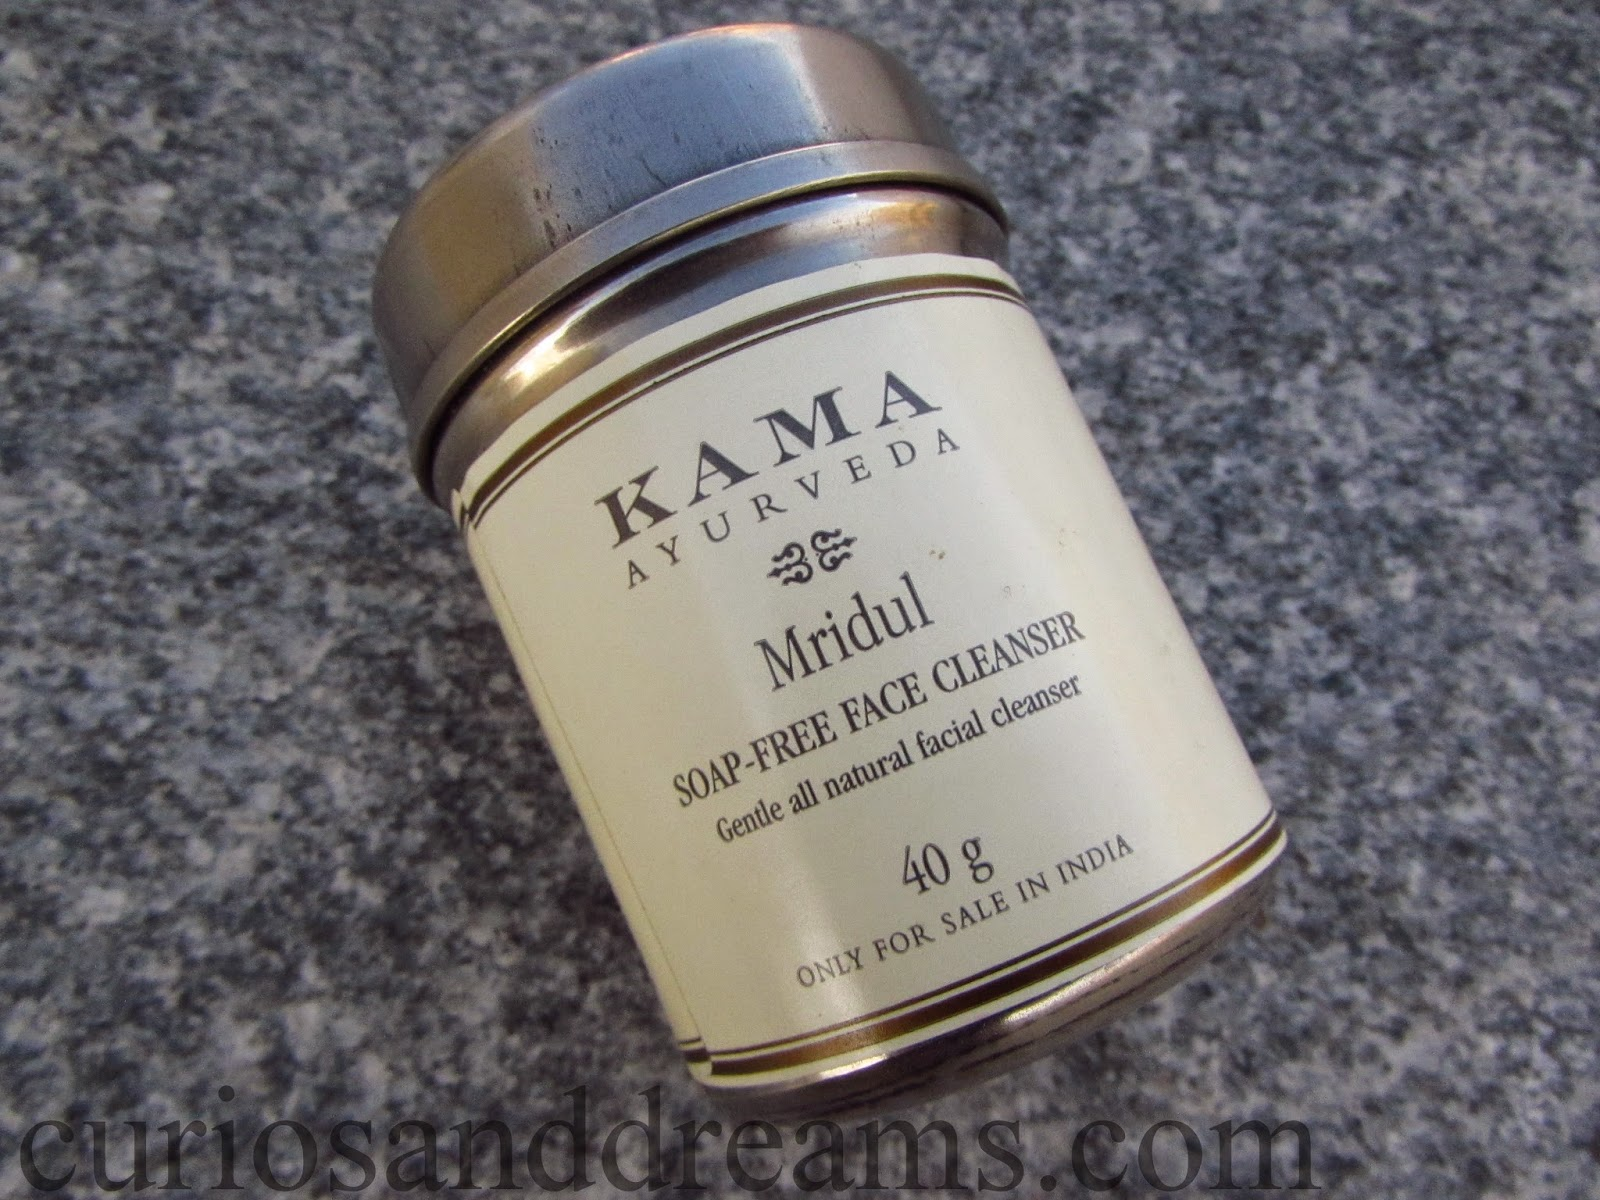 Kama Ayurveda Mridul Soap-Free Face Cleanser review, Kama Ayurveda Soap-Free Face Cleanser review